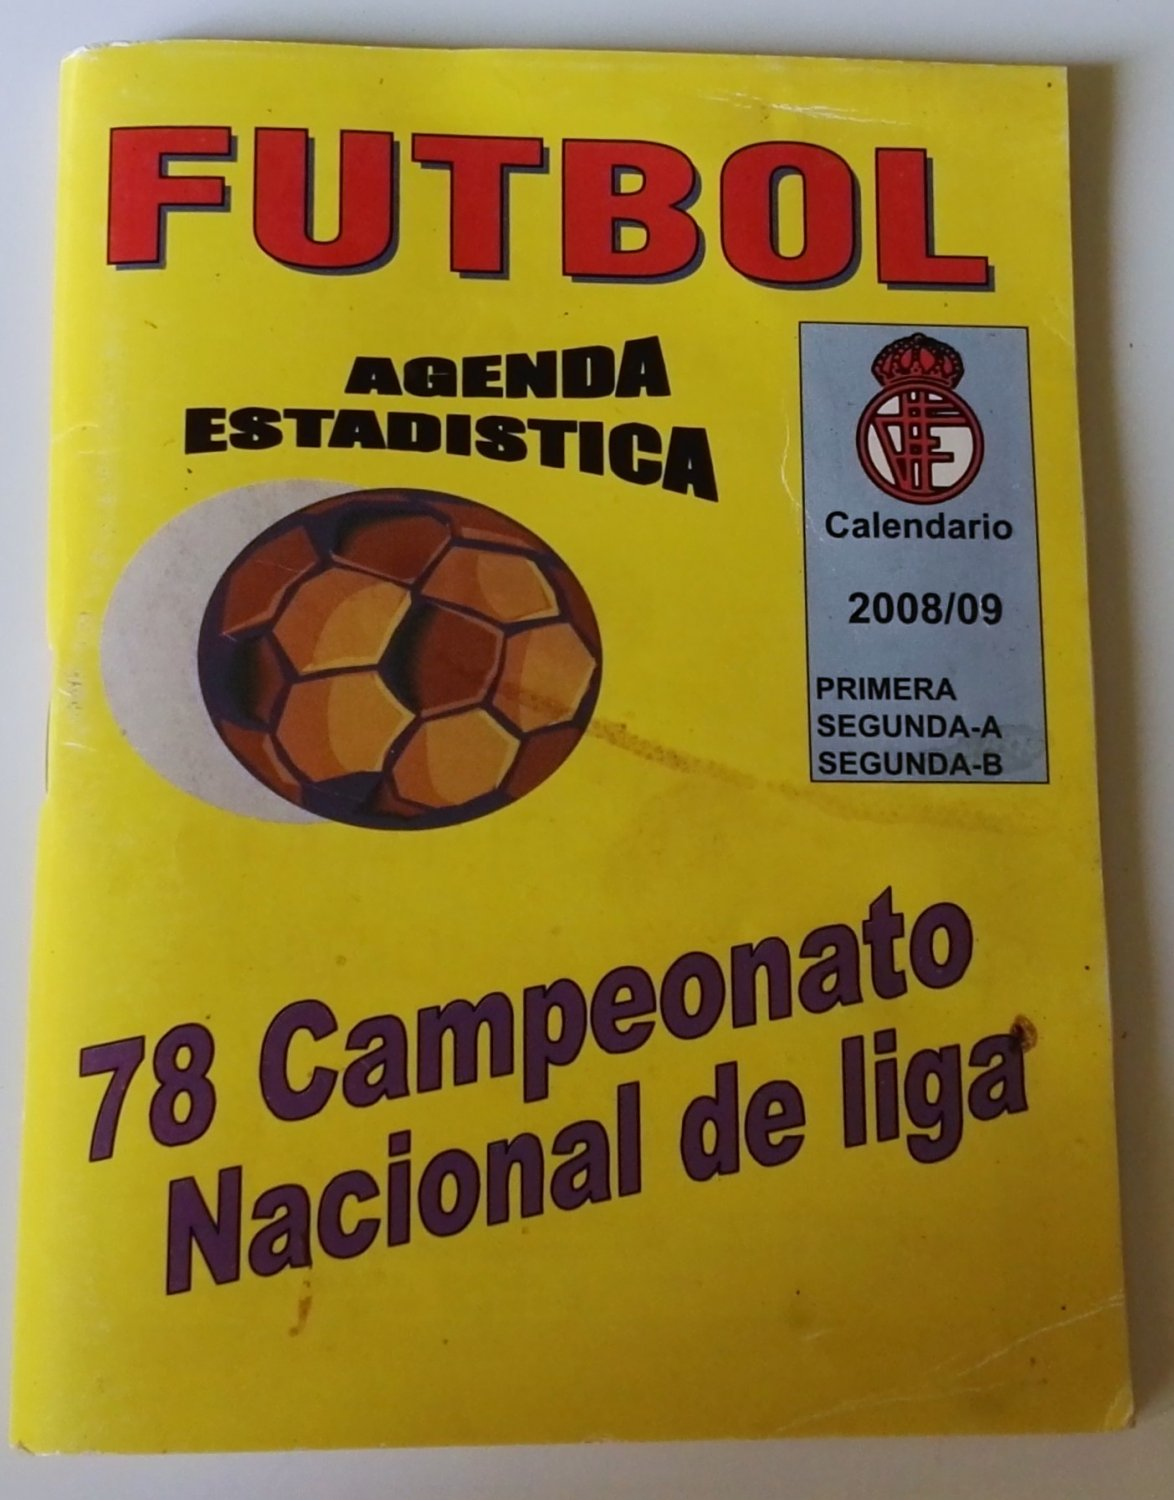 Soccer / Stats schedule 78 national league championship 2008/09